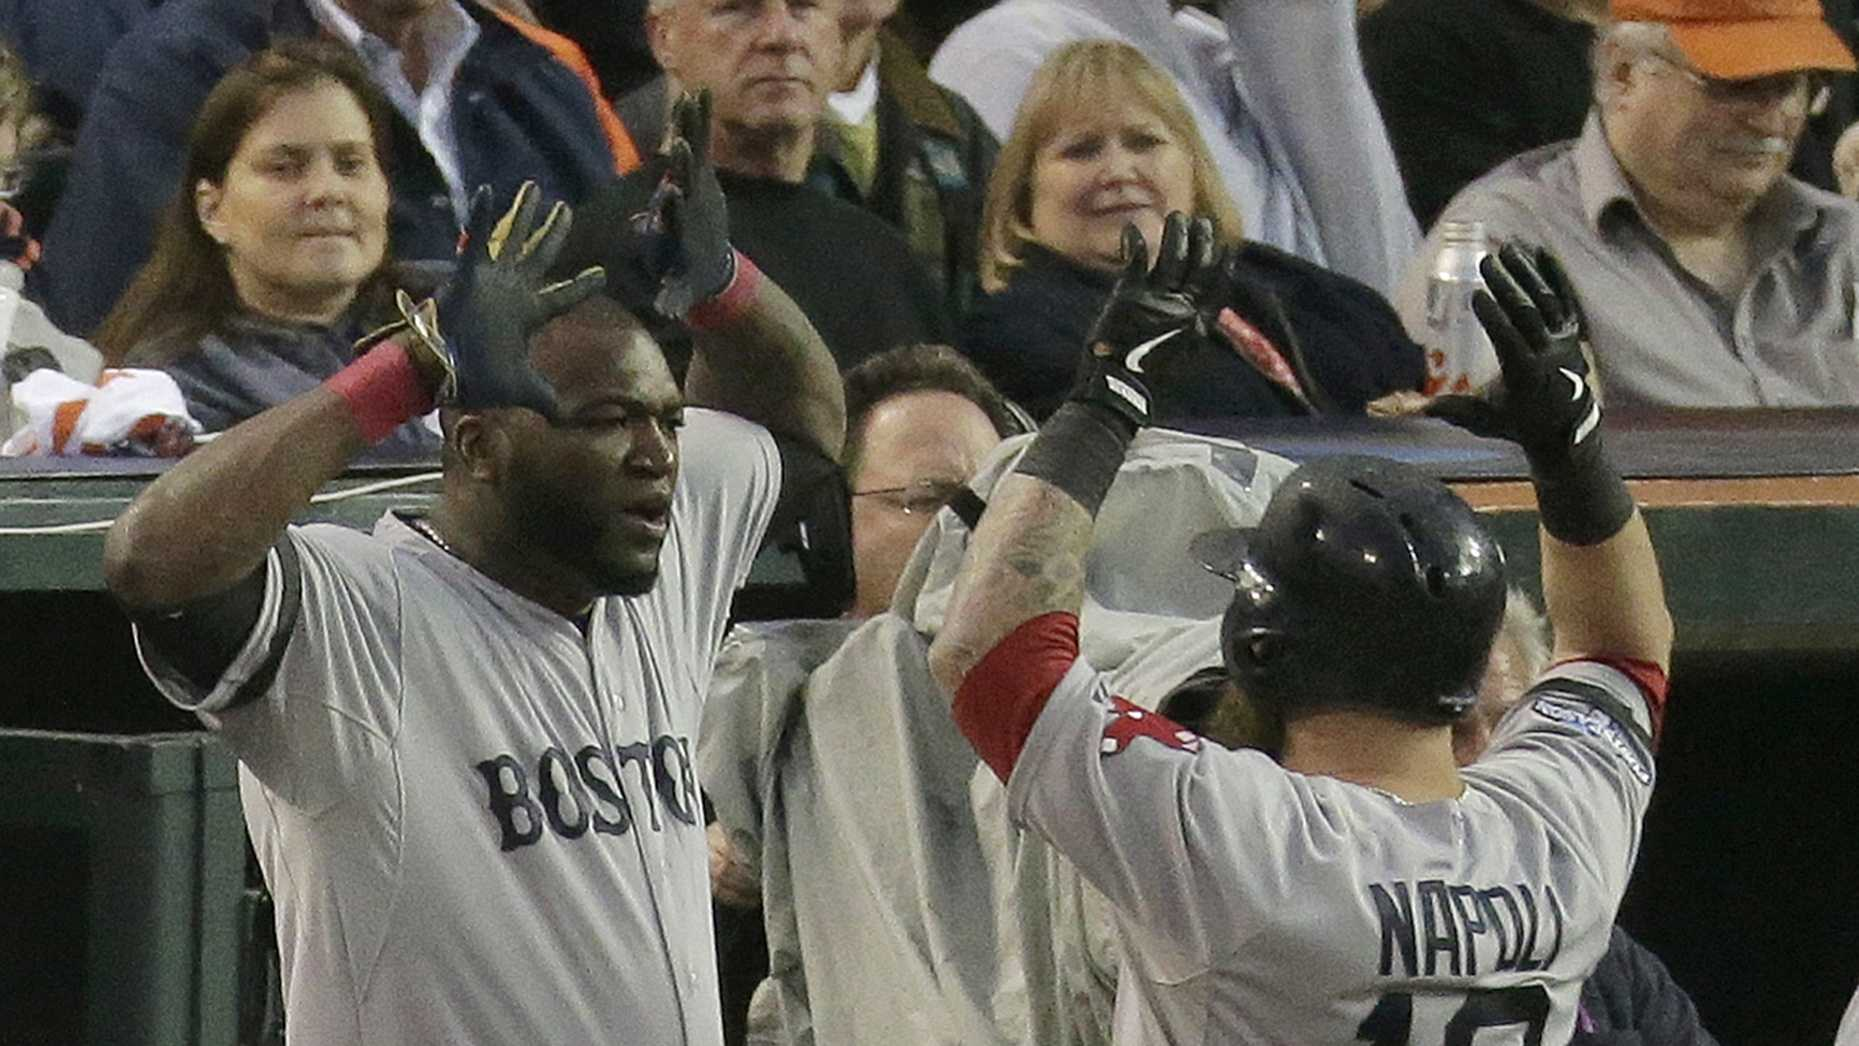 Boston Red Sox's David Ortiz congratulates Mike Napoli after Napoli hits a home run in the seventh inning during Game 3 of the American League baseball championship series against the Detroit Tigers Tuesday, Oct. 15, 2013, in Detroit.